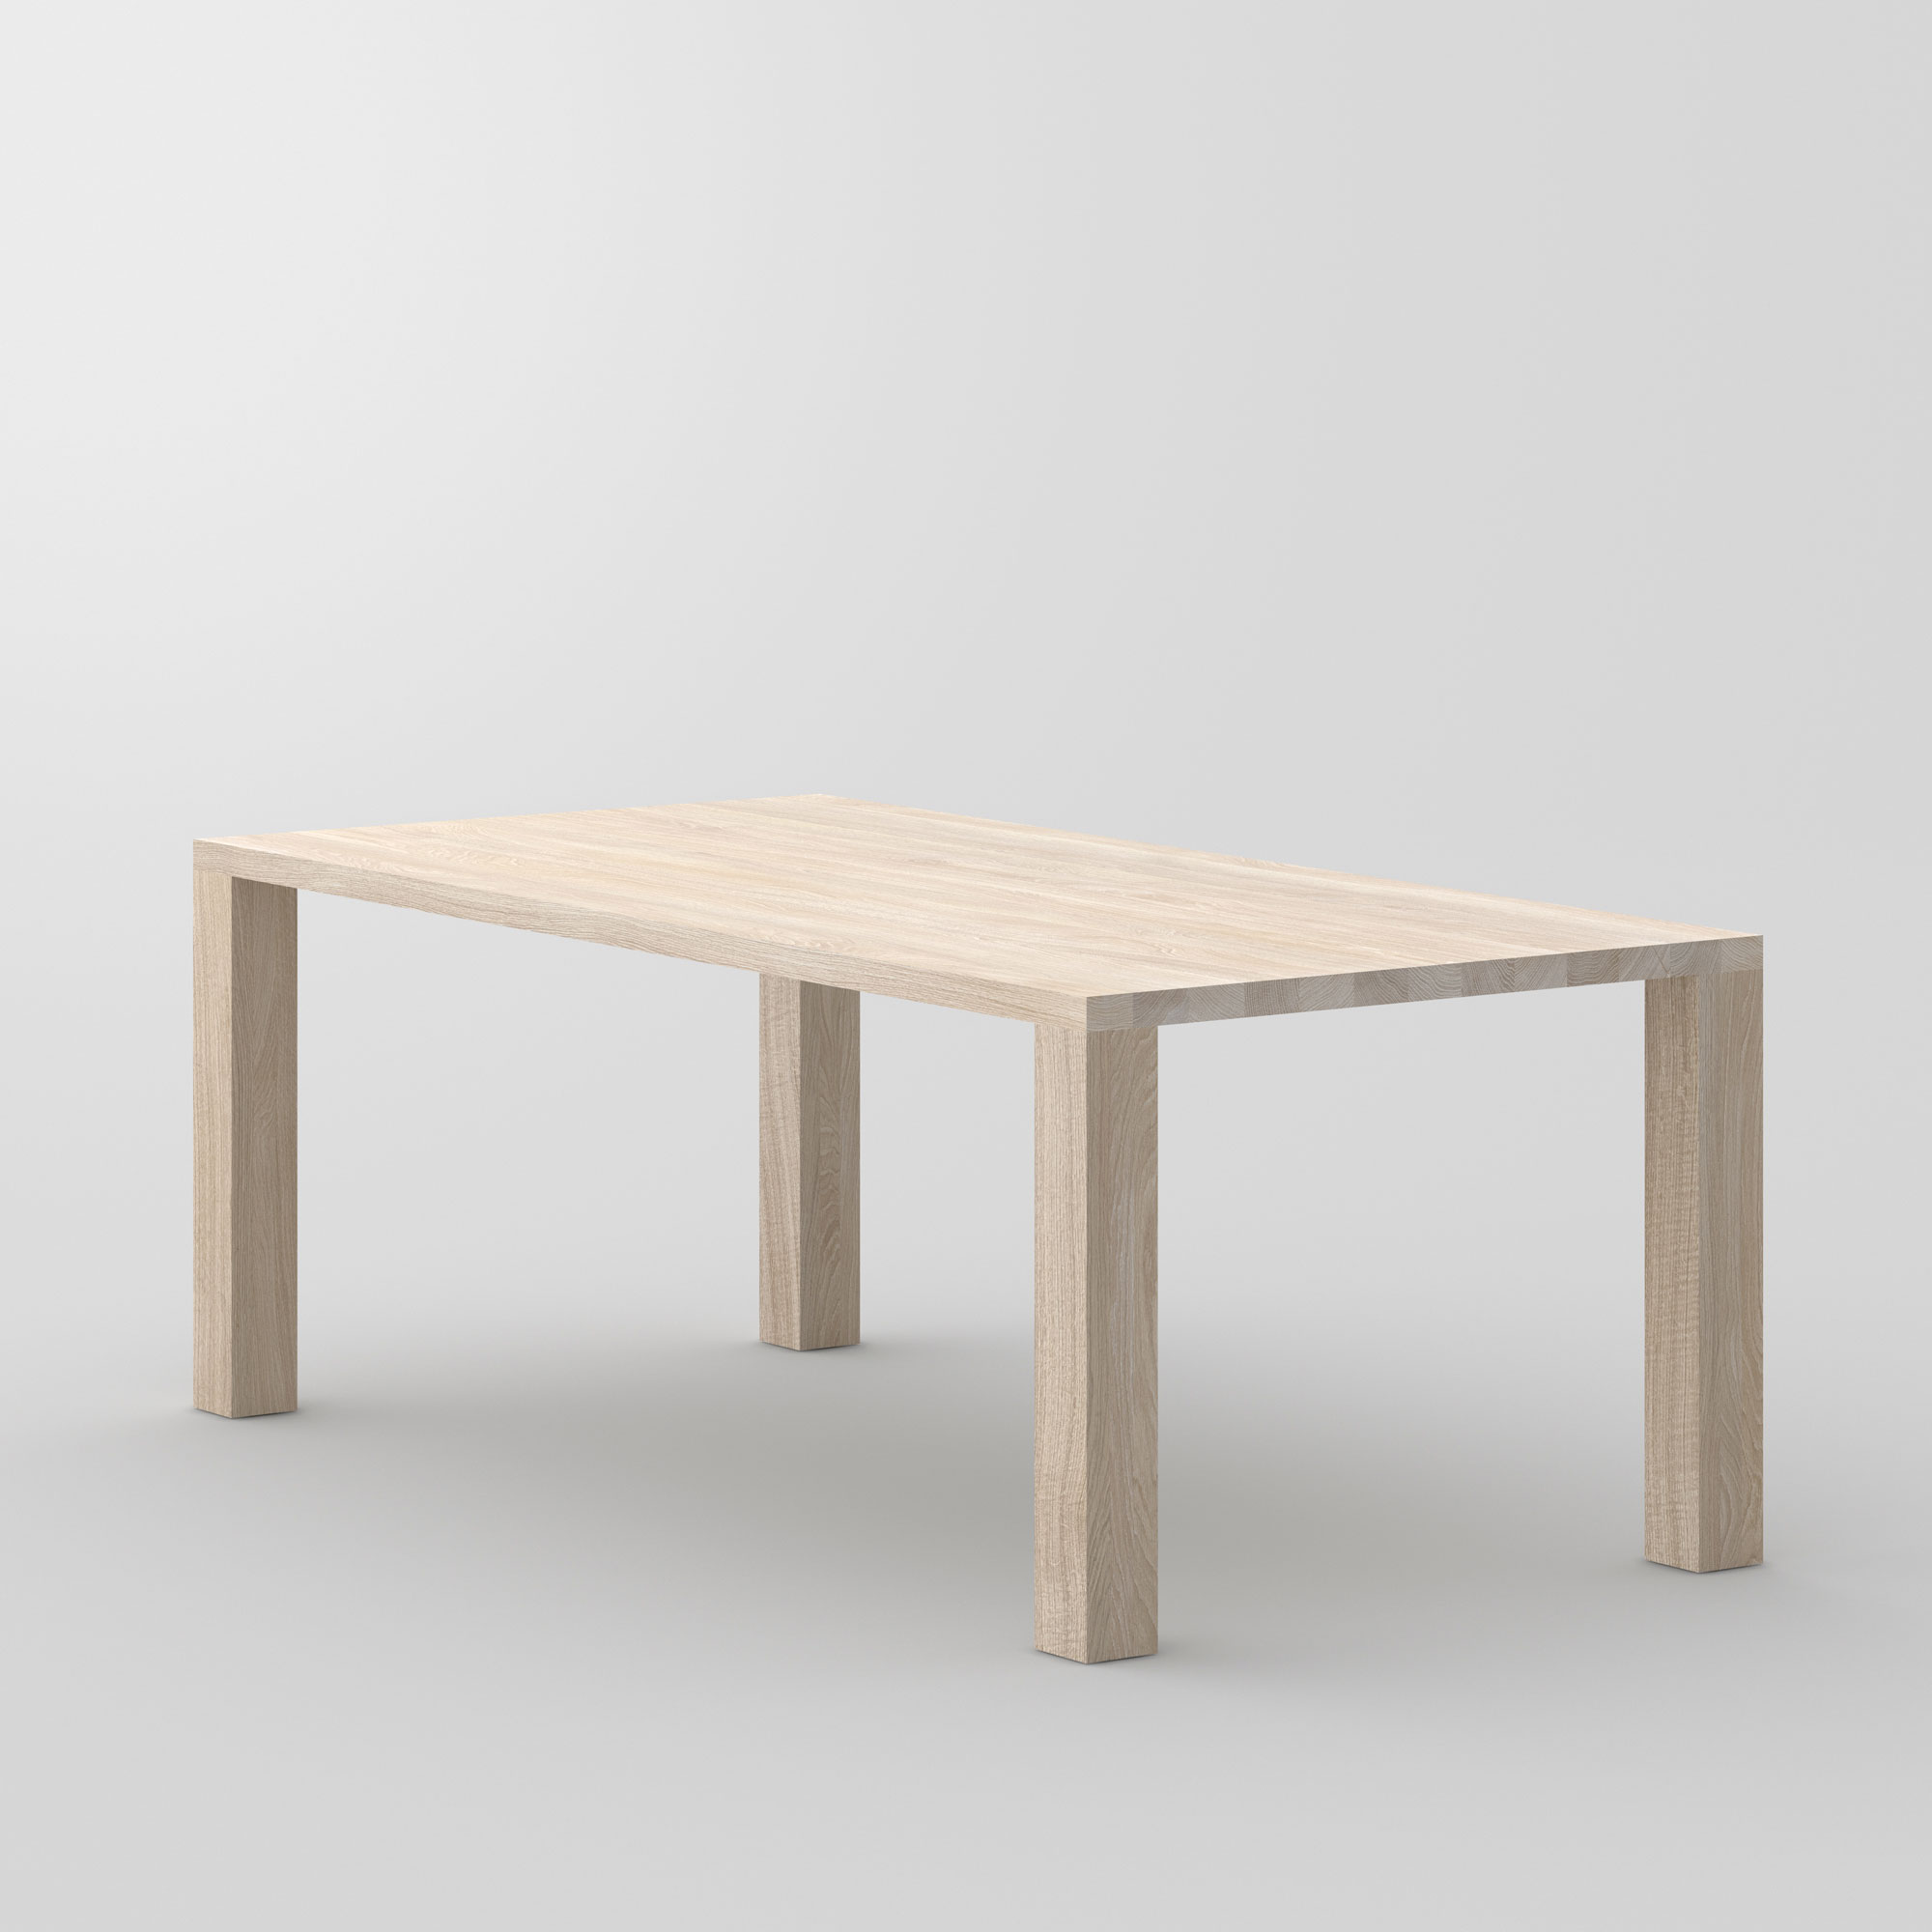 Frameless Solid Wood Table IUSTUS cam3 custom made in solid wood by vitamin design